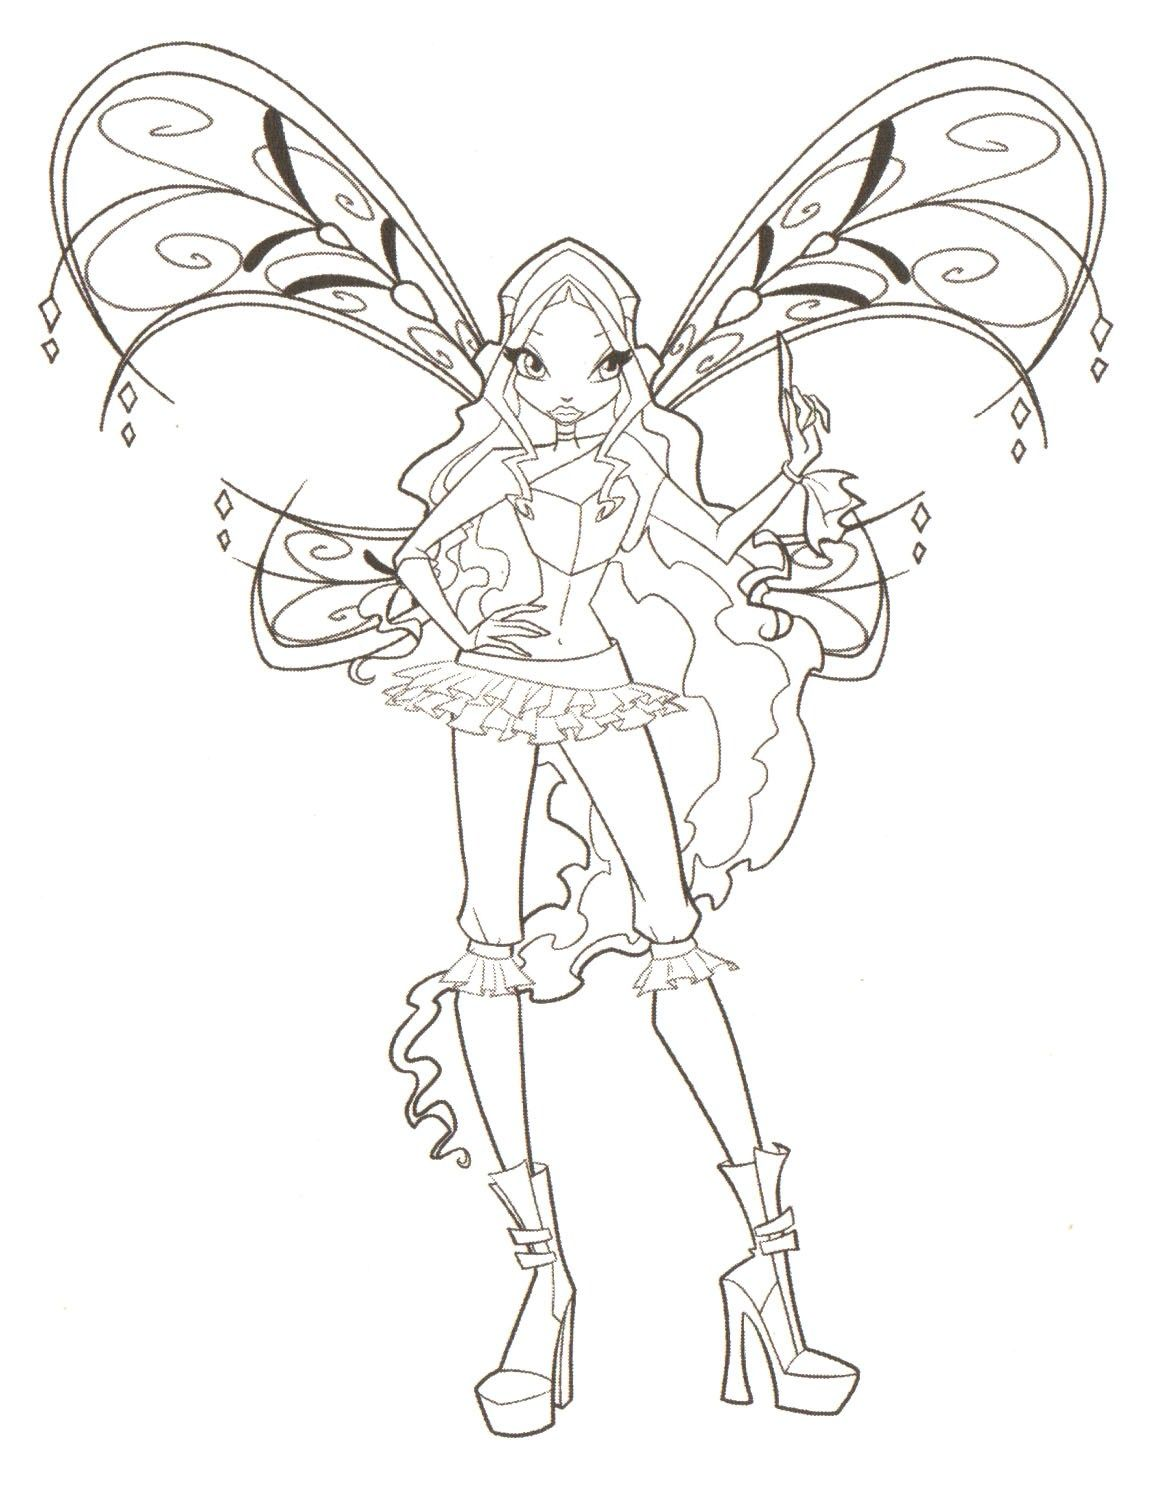 stella winx club coloring pages kids coloring pages pinterest